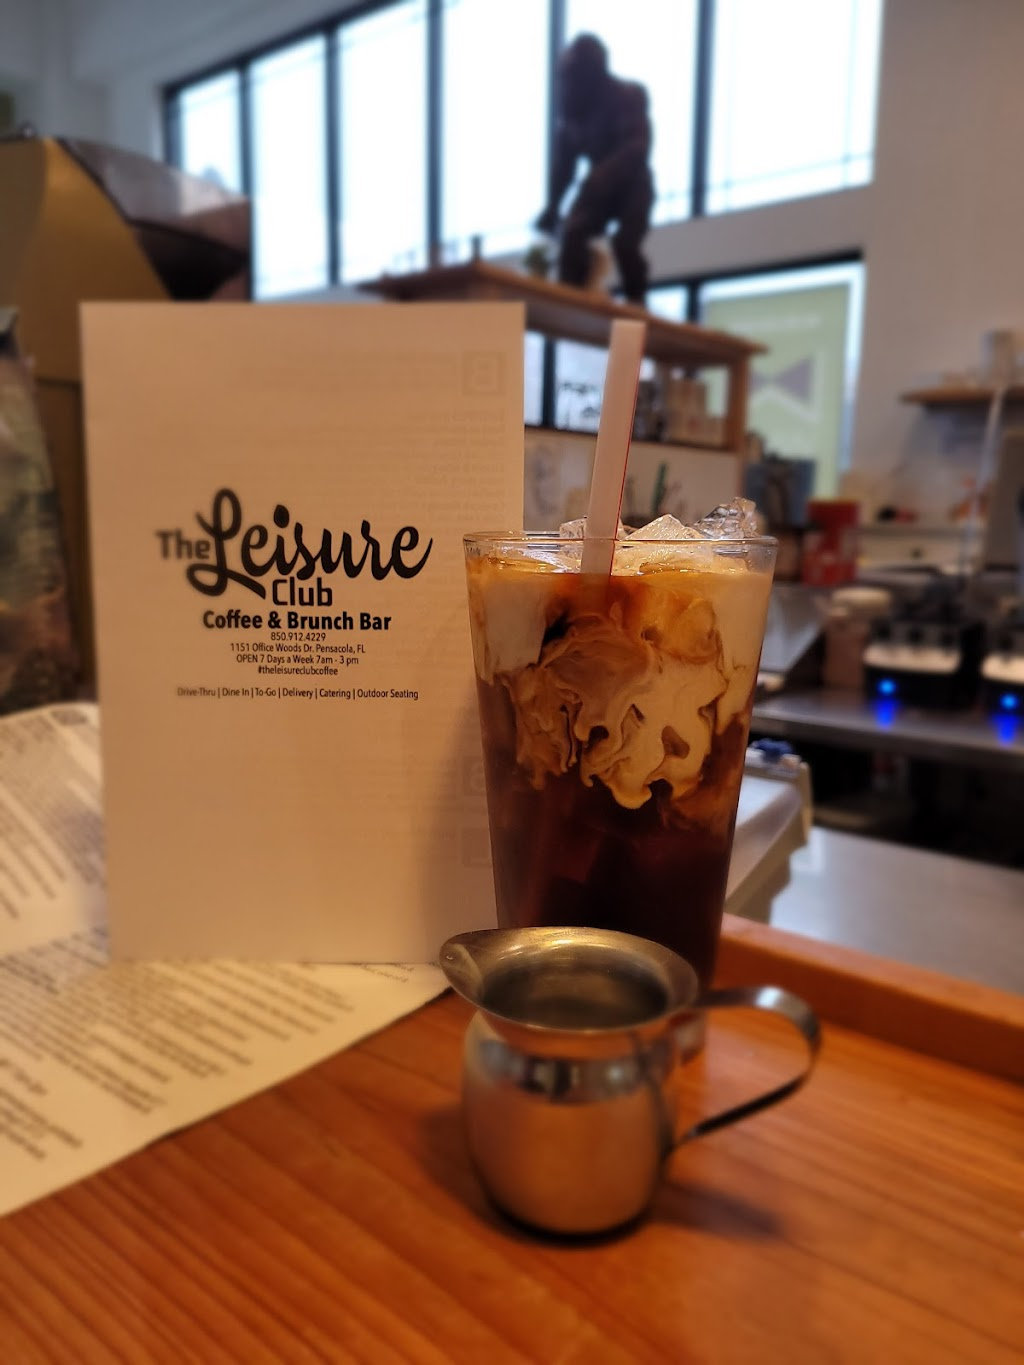 The Leisure Club Coffee Bar & Restaurant   cafe   1151 Office Woods Dr Suite A, Pensacola, FL 32504, USA   8509124229 OR +1 850-912-4229